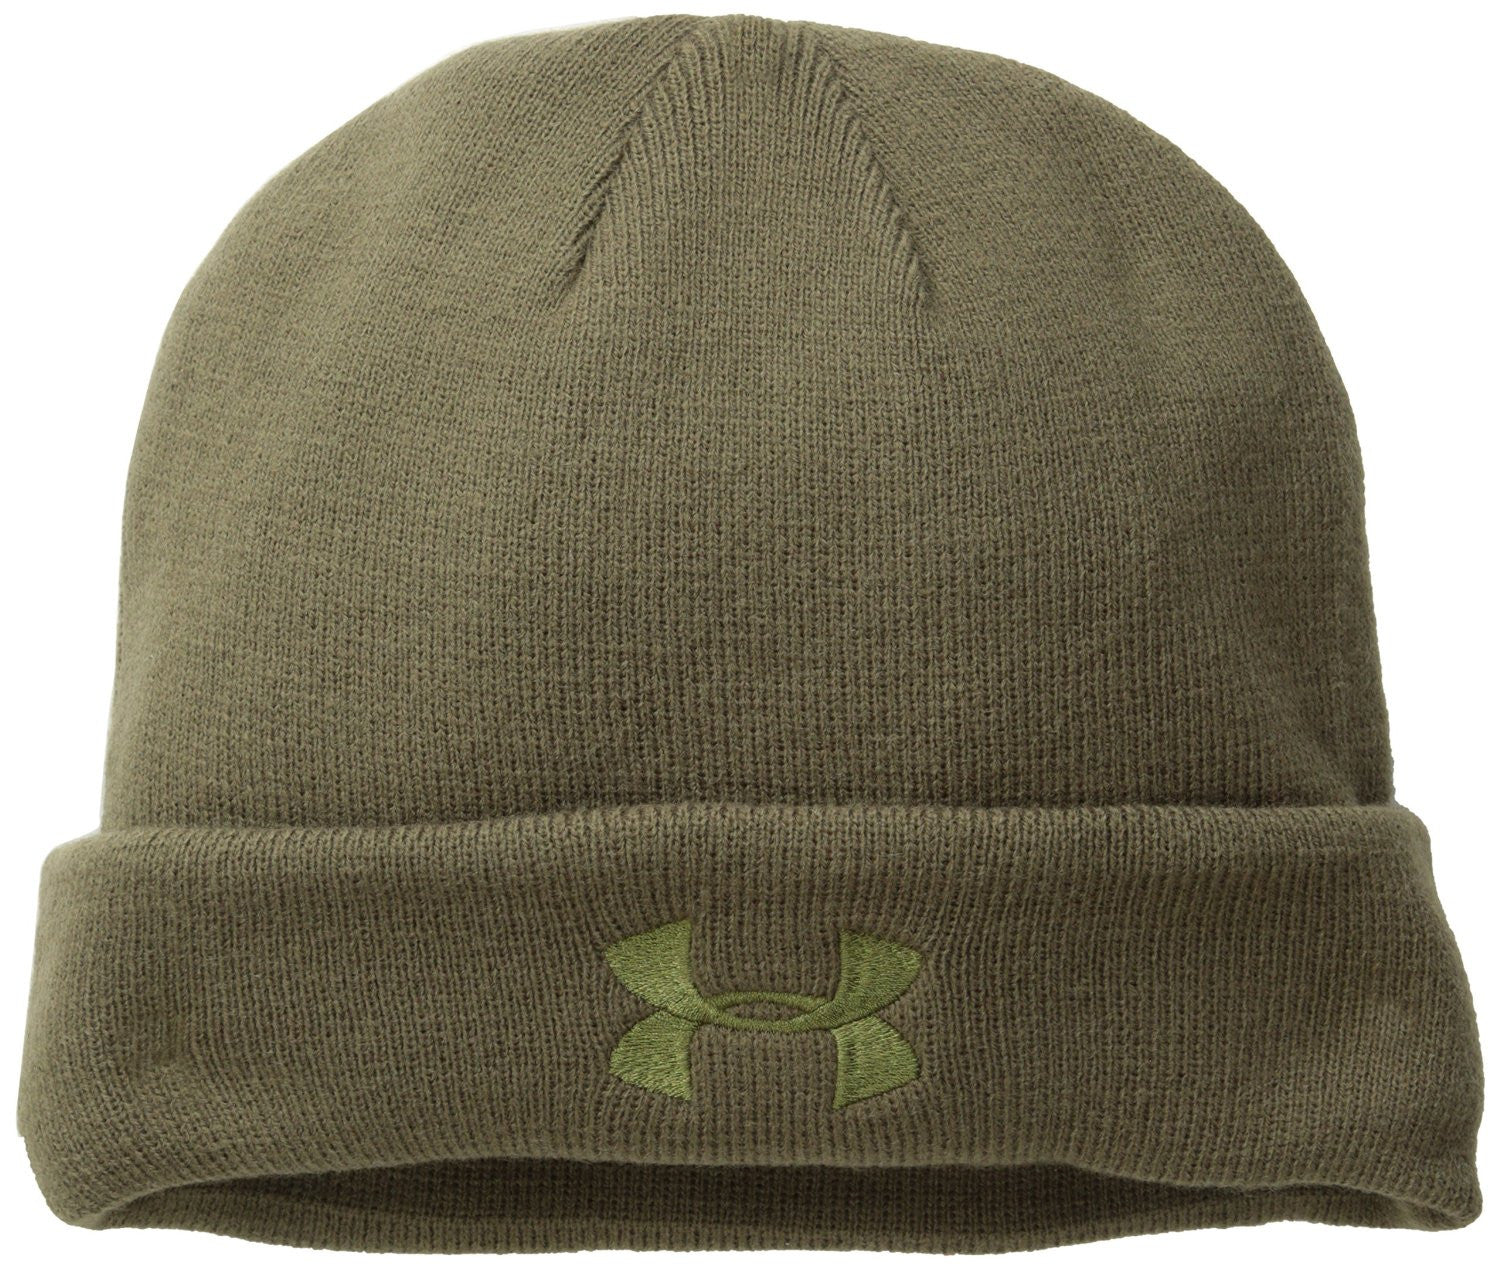 Under Armour Men's Tac Stealth Beanie - Back40Trading2